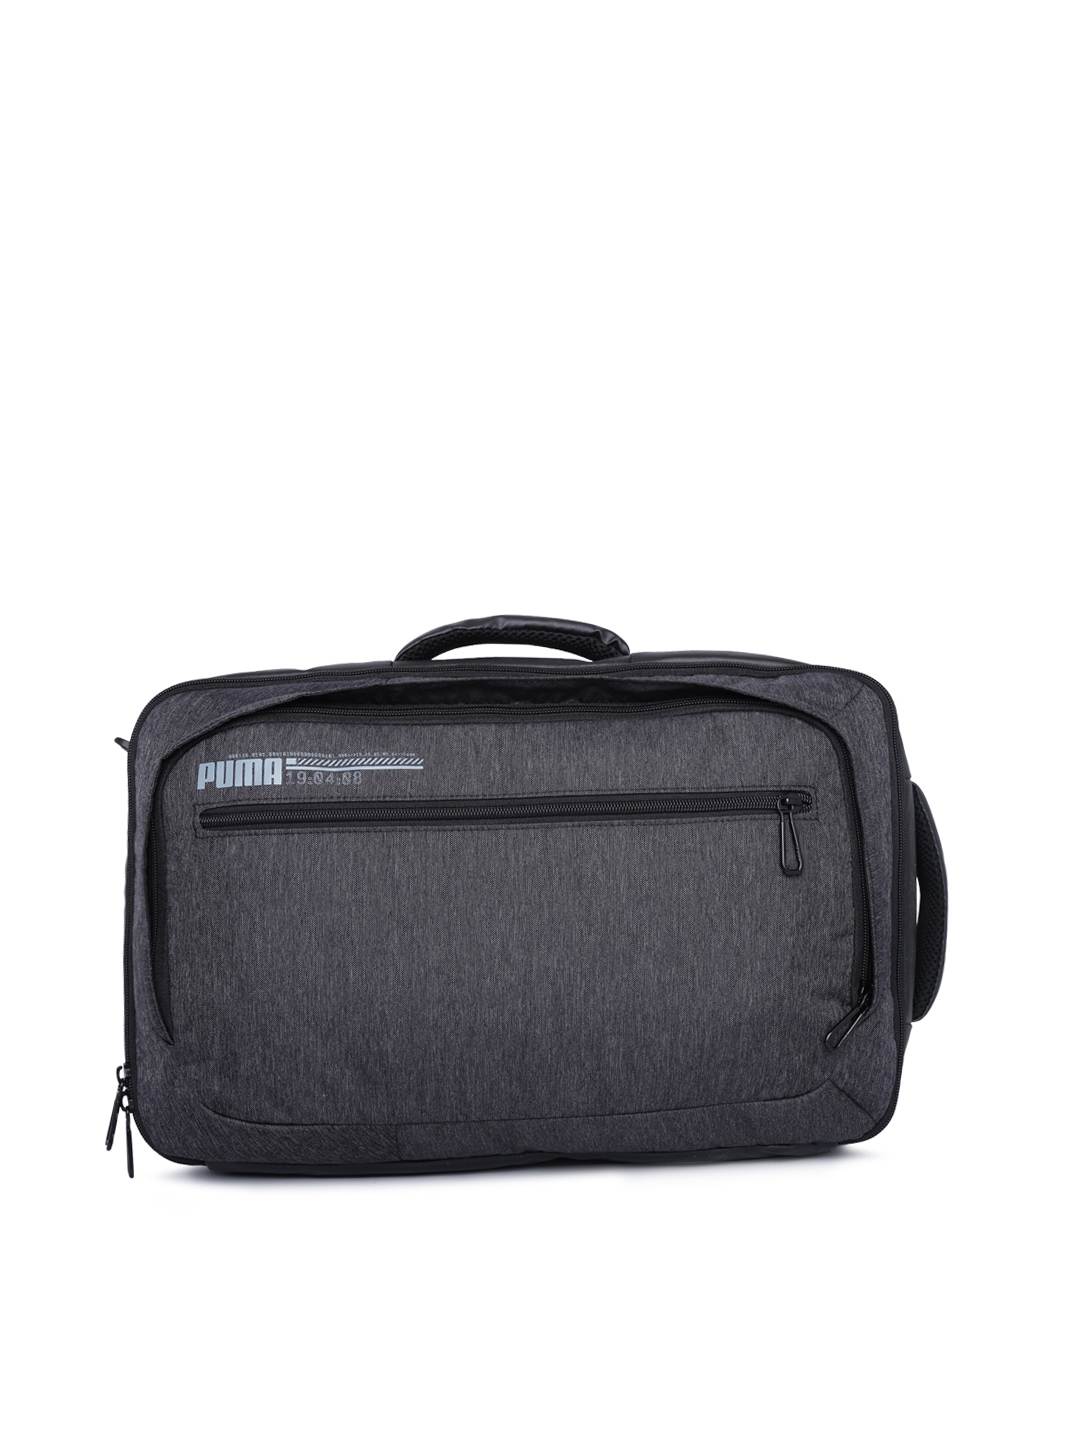 159dfbe0c097 Puma Bags For Men - Buy Men s Puma Bags Online from Myntra